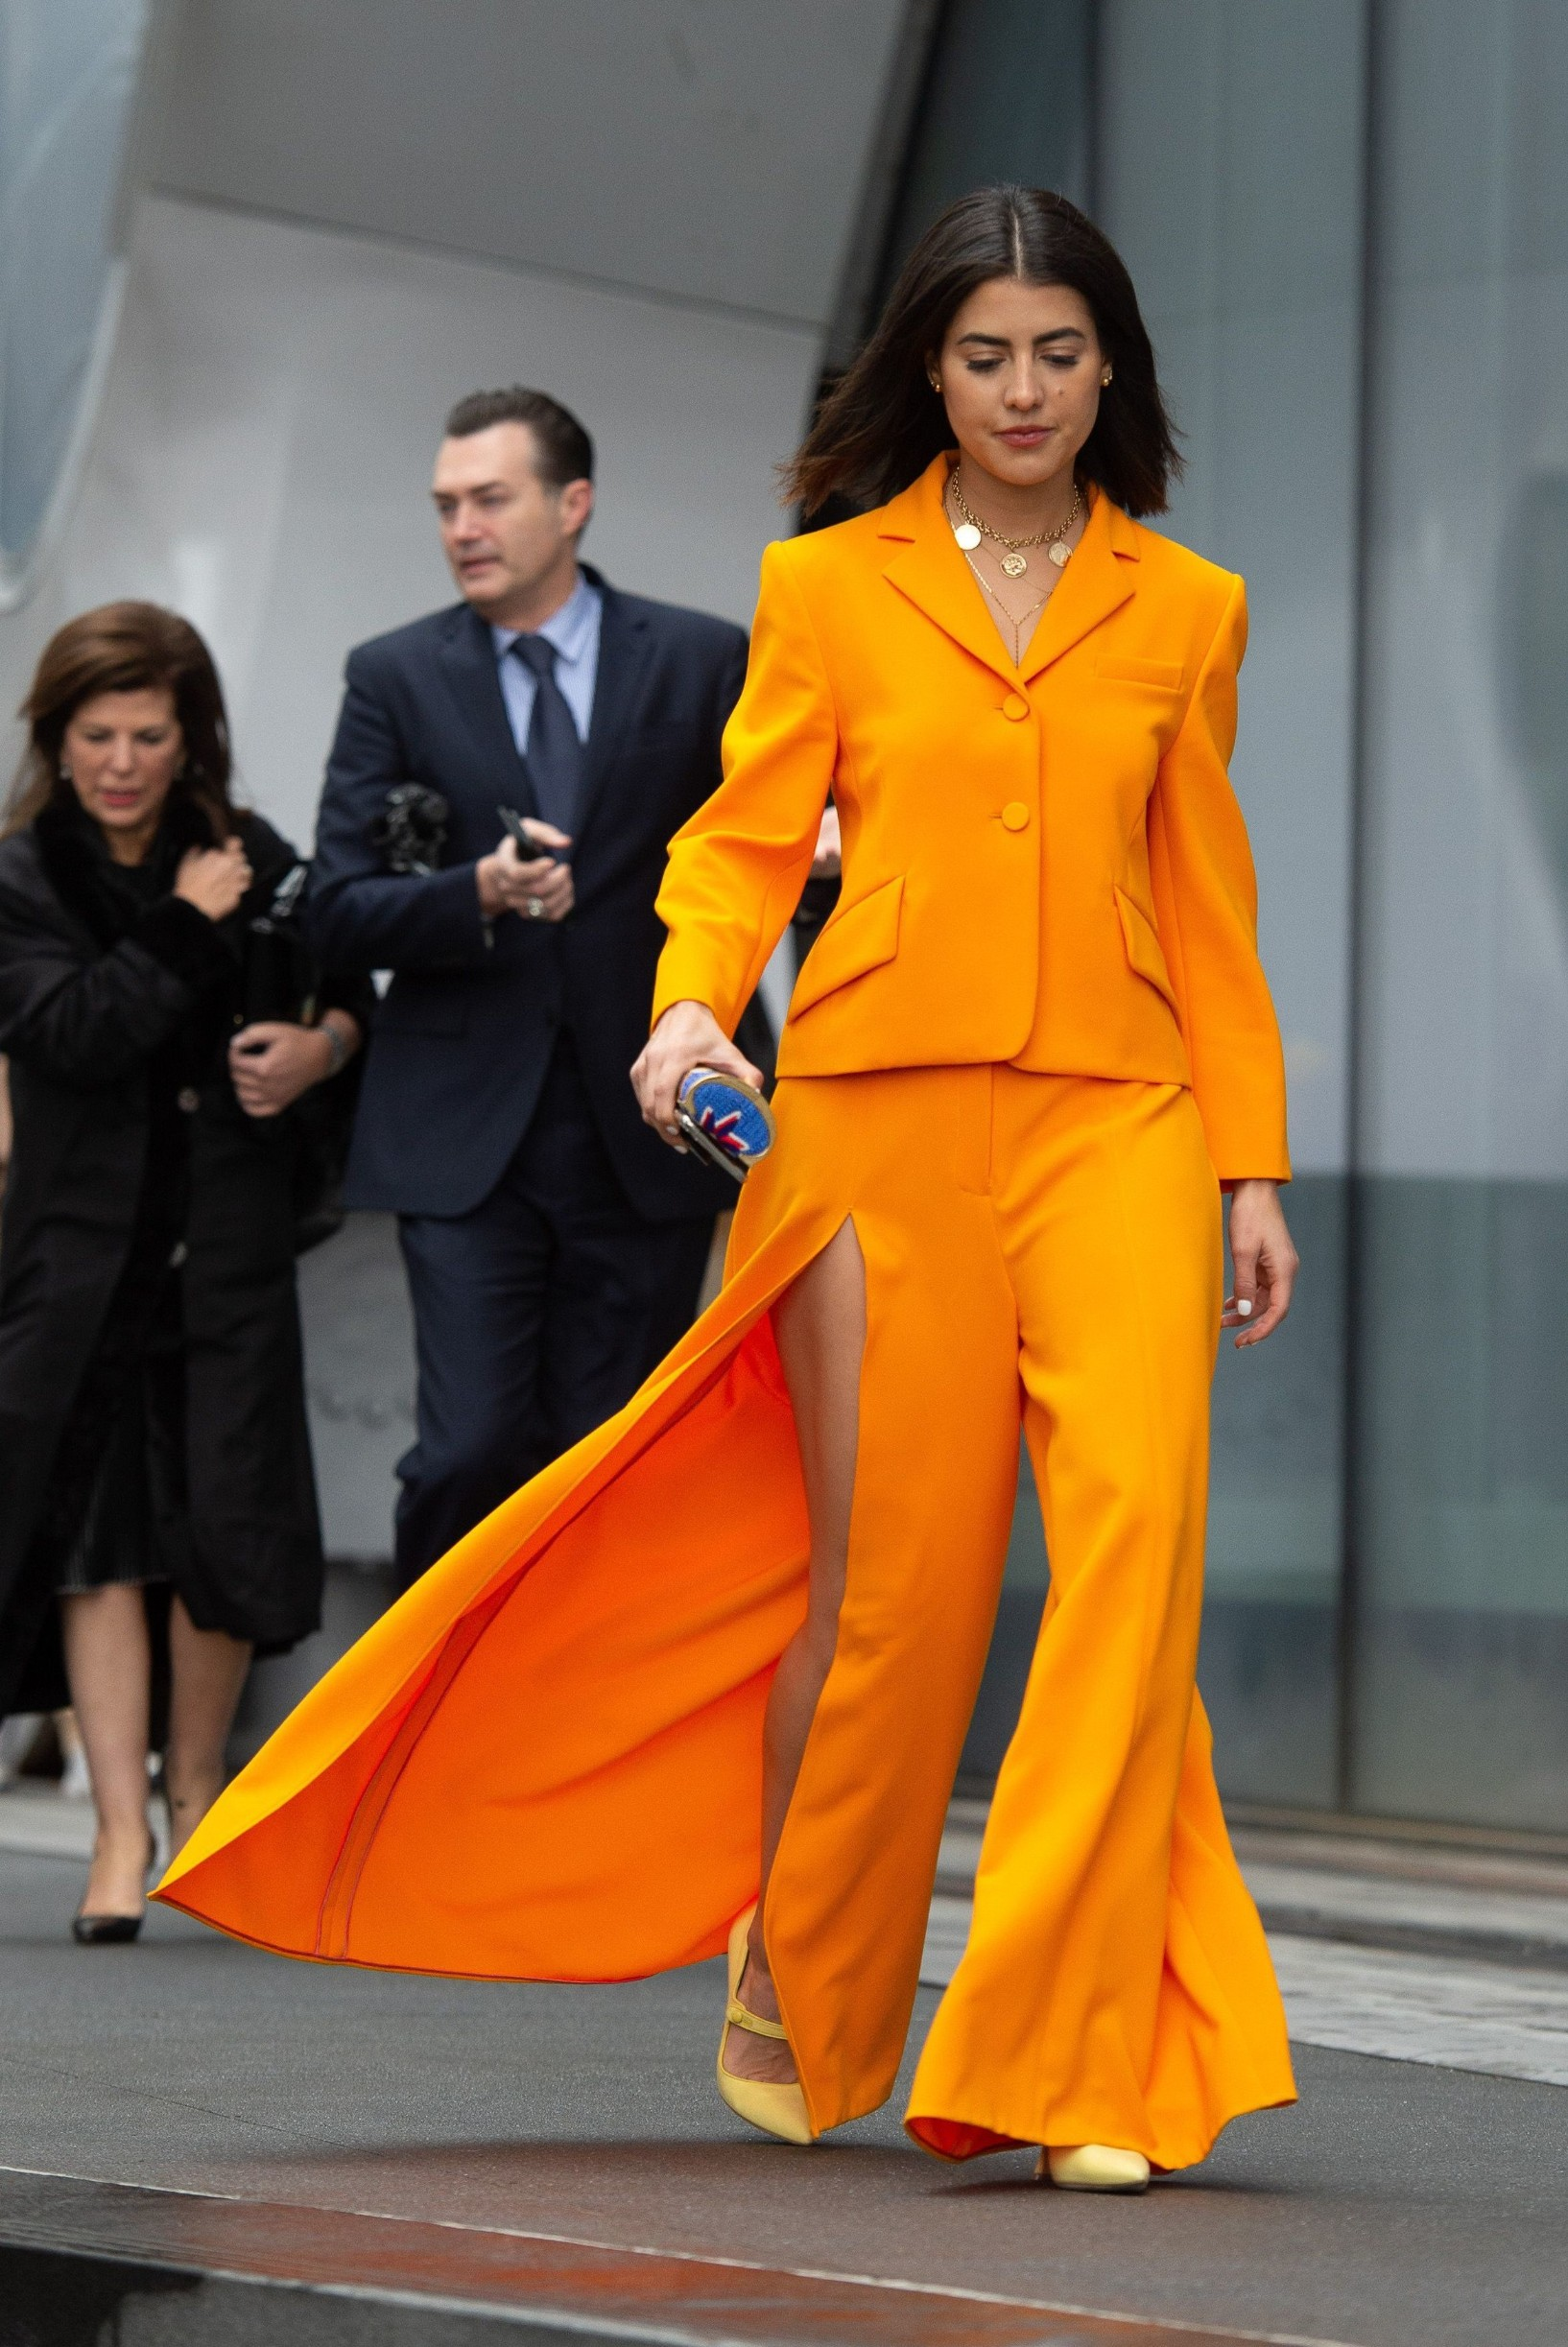 Street Style Street Style, Fall Winter 2020, New York Fashion Week, USA - 10 Feb 2020, Image: 497760705, License: Rights-managed, Restrictions: , Model Release: no, Credit line: ANDREW MORALES/WWD / Shutterstock Editorial / Profimedia